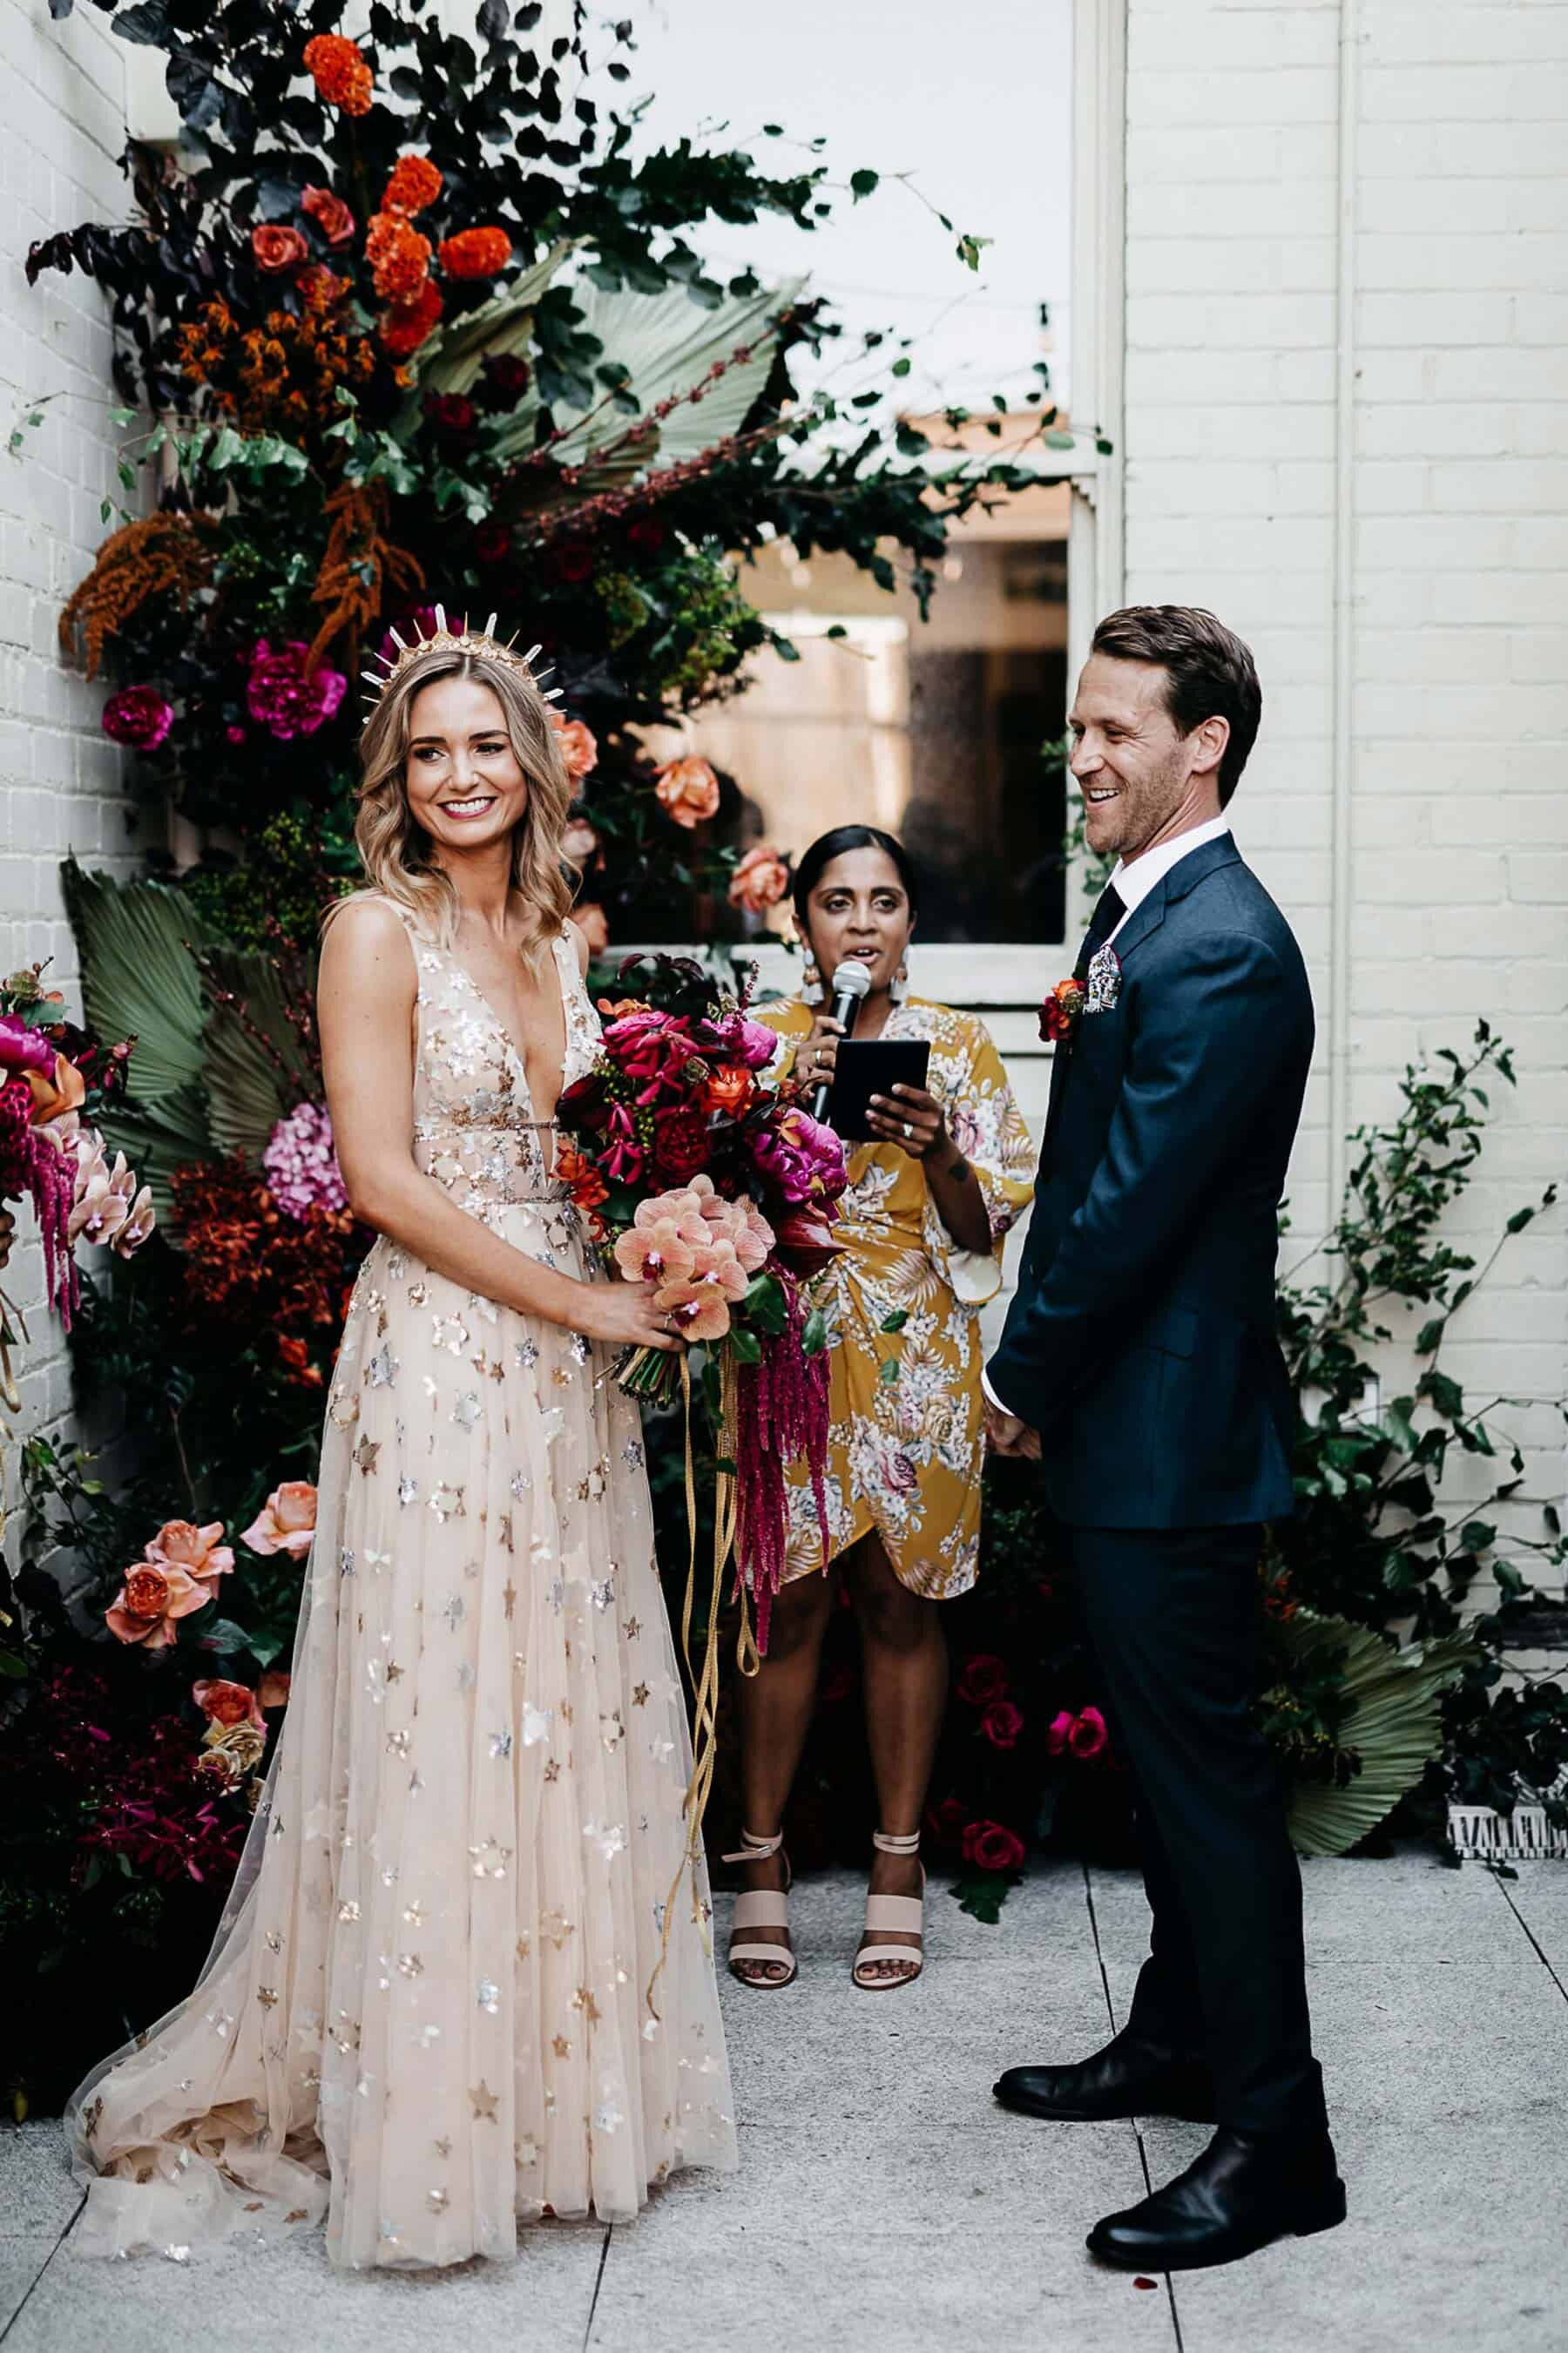 Bride wears gold Willowby wedding dress and amaroq crown with vibrant pink and red bouquet